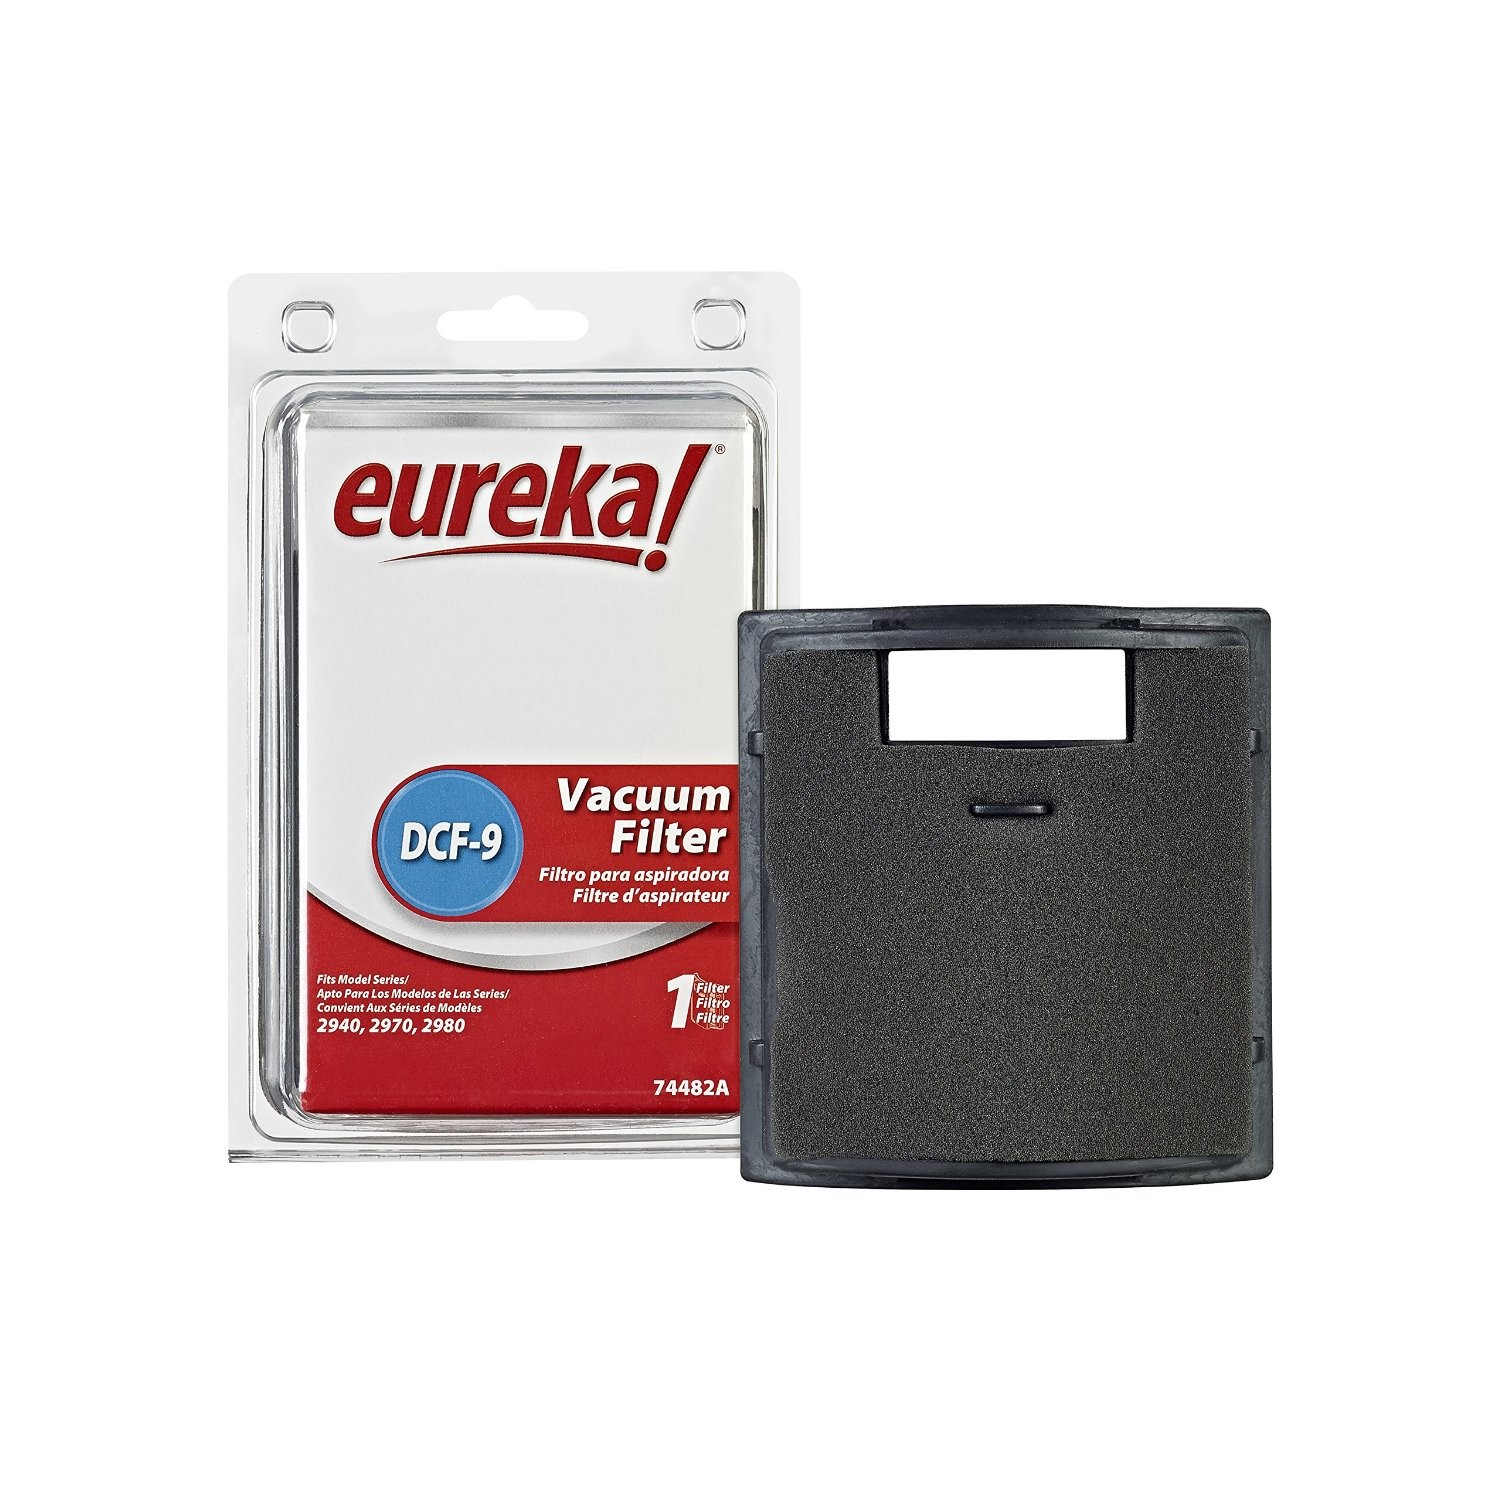 Eureka Genuine DCF-9 filter